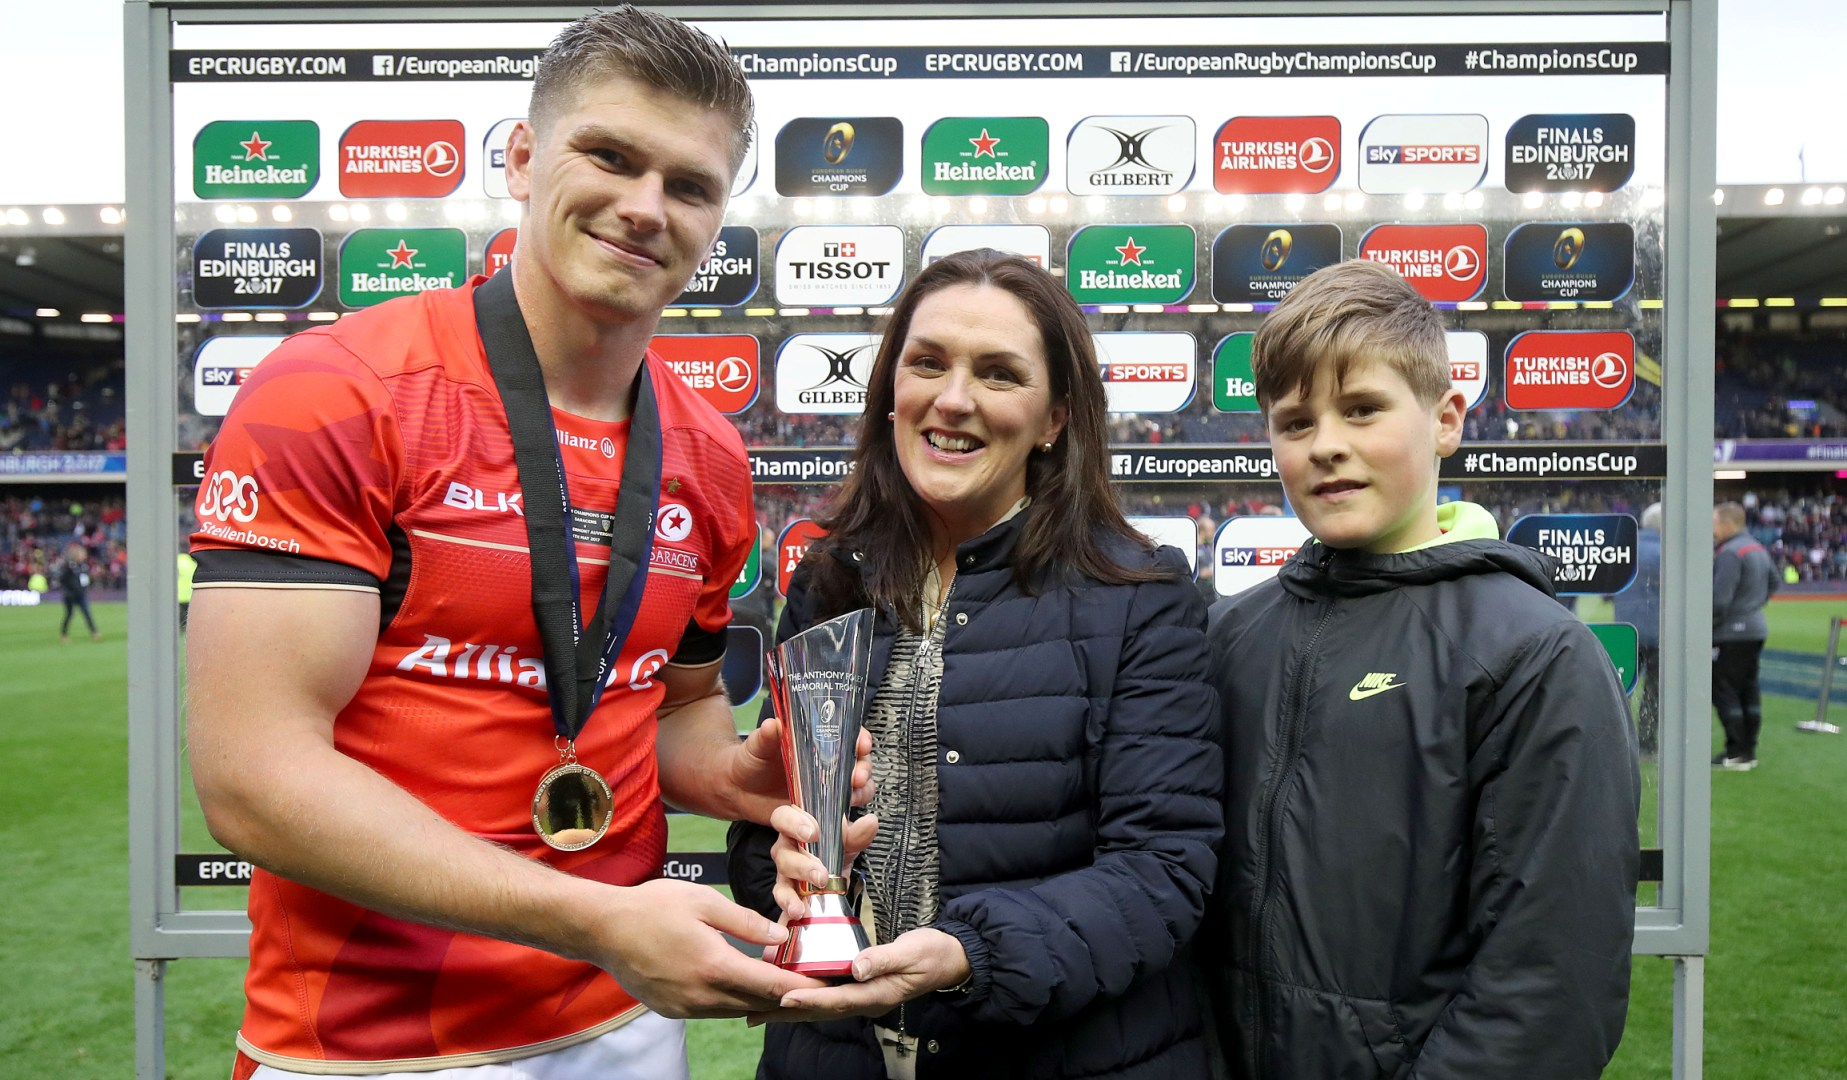 Farrell awarded Anthony Foley Memorial Trophy as European Player of the Year